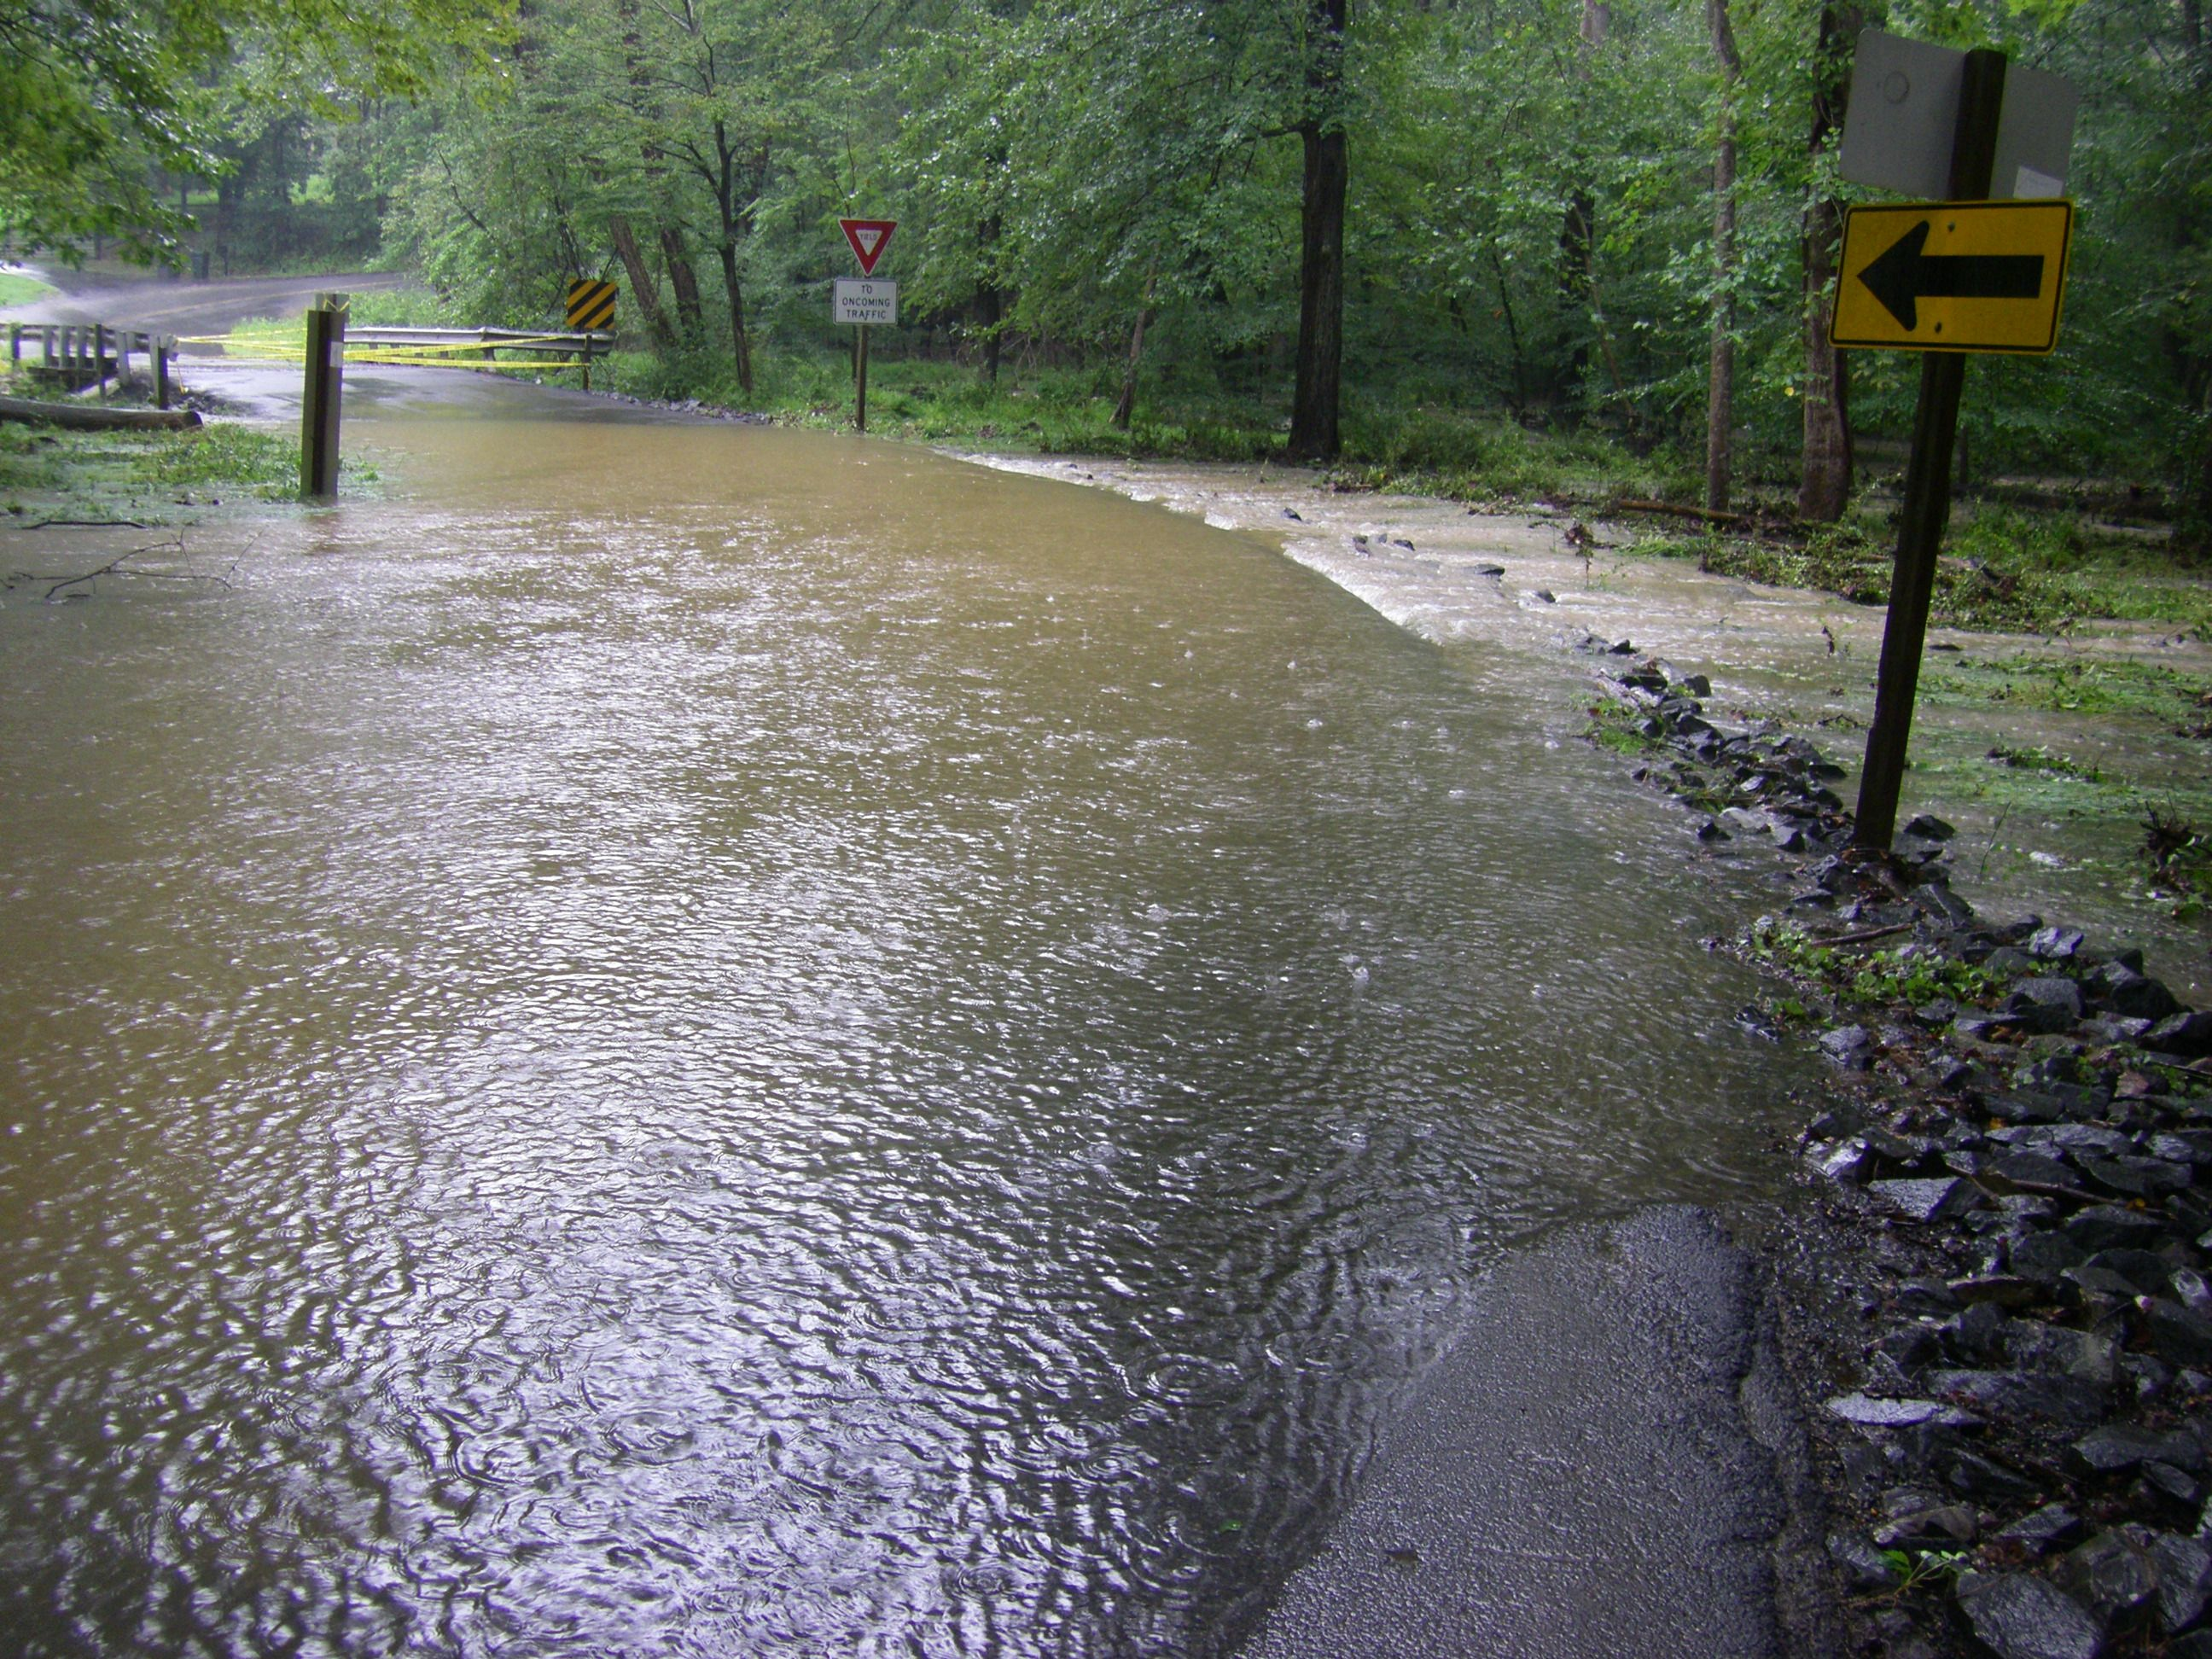 Flooding near Fairfax Station, VA